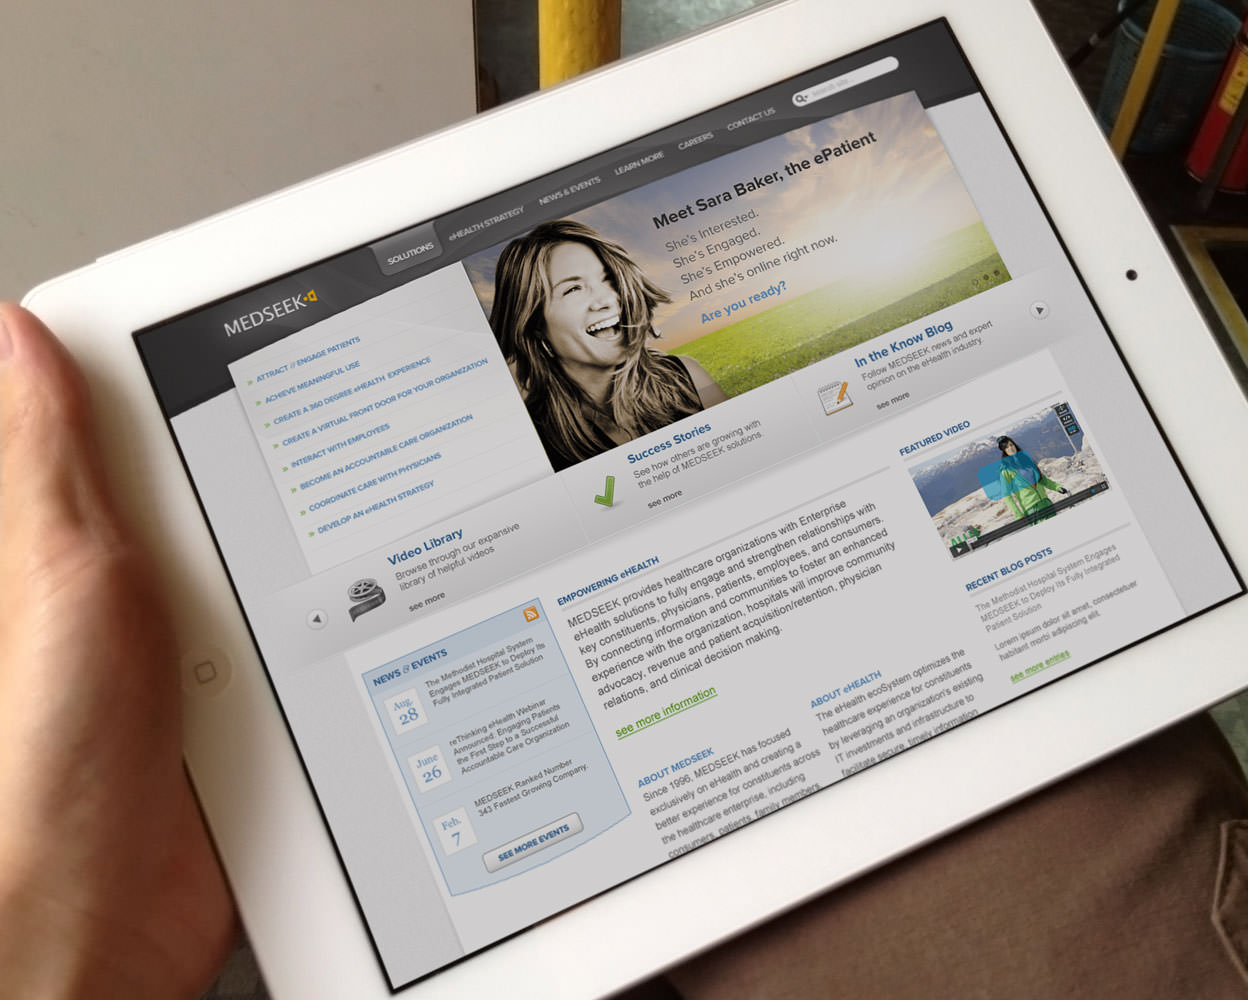 Medseek Web Design - iPad